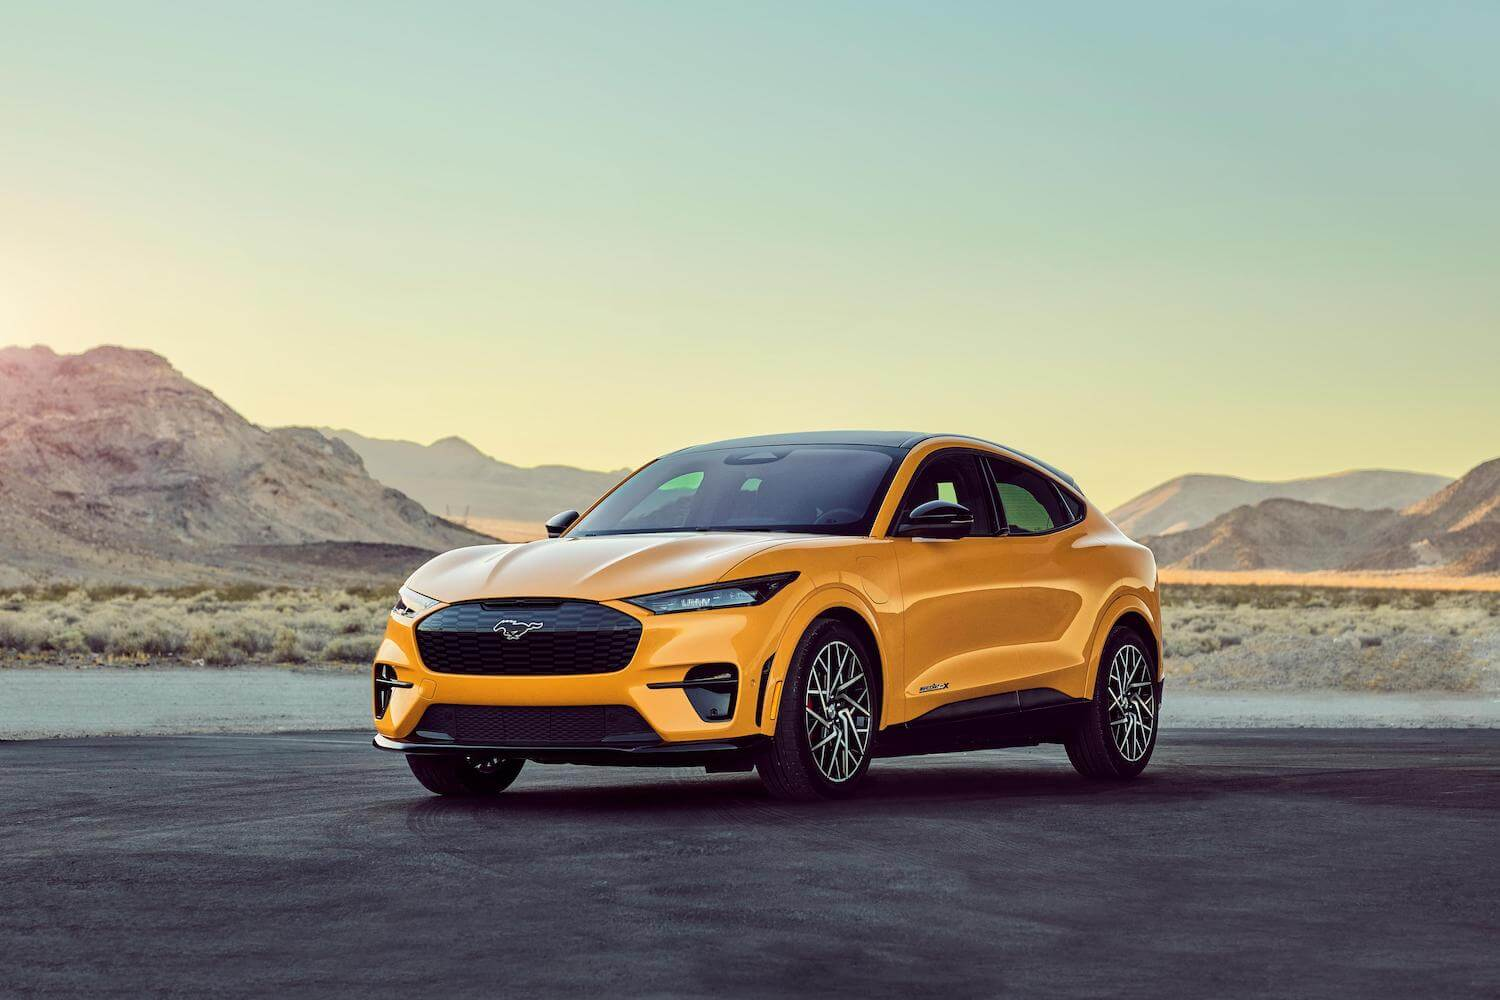 2021 Mustang Mach-E Performance Edition